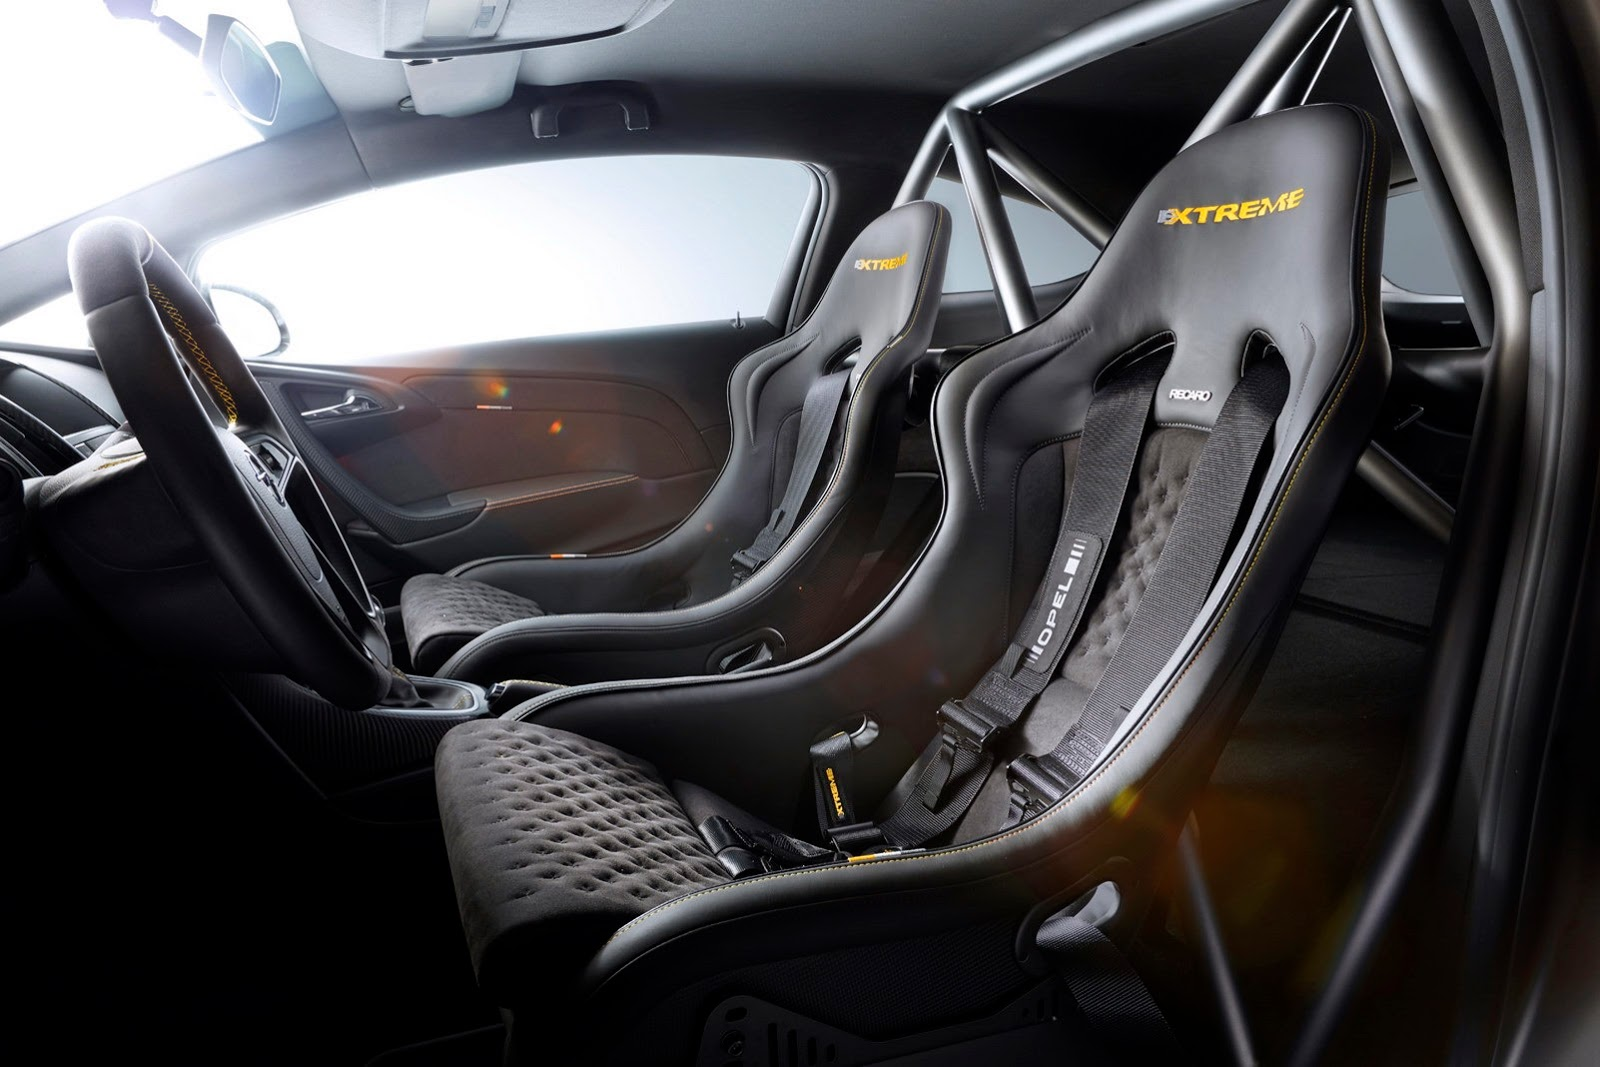 2014_opel_astra_opc_extreme_04